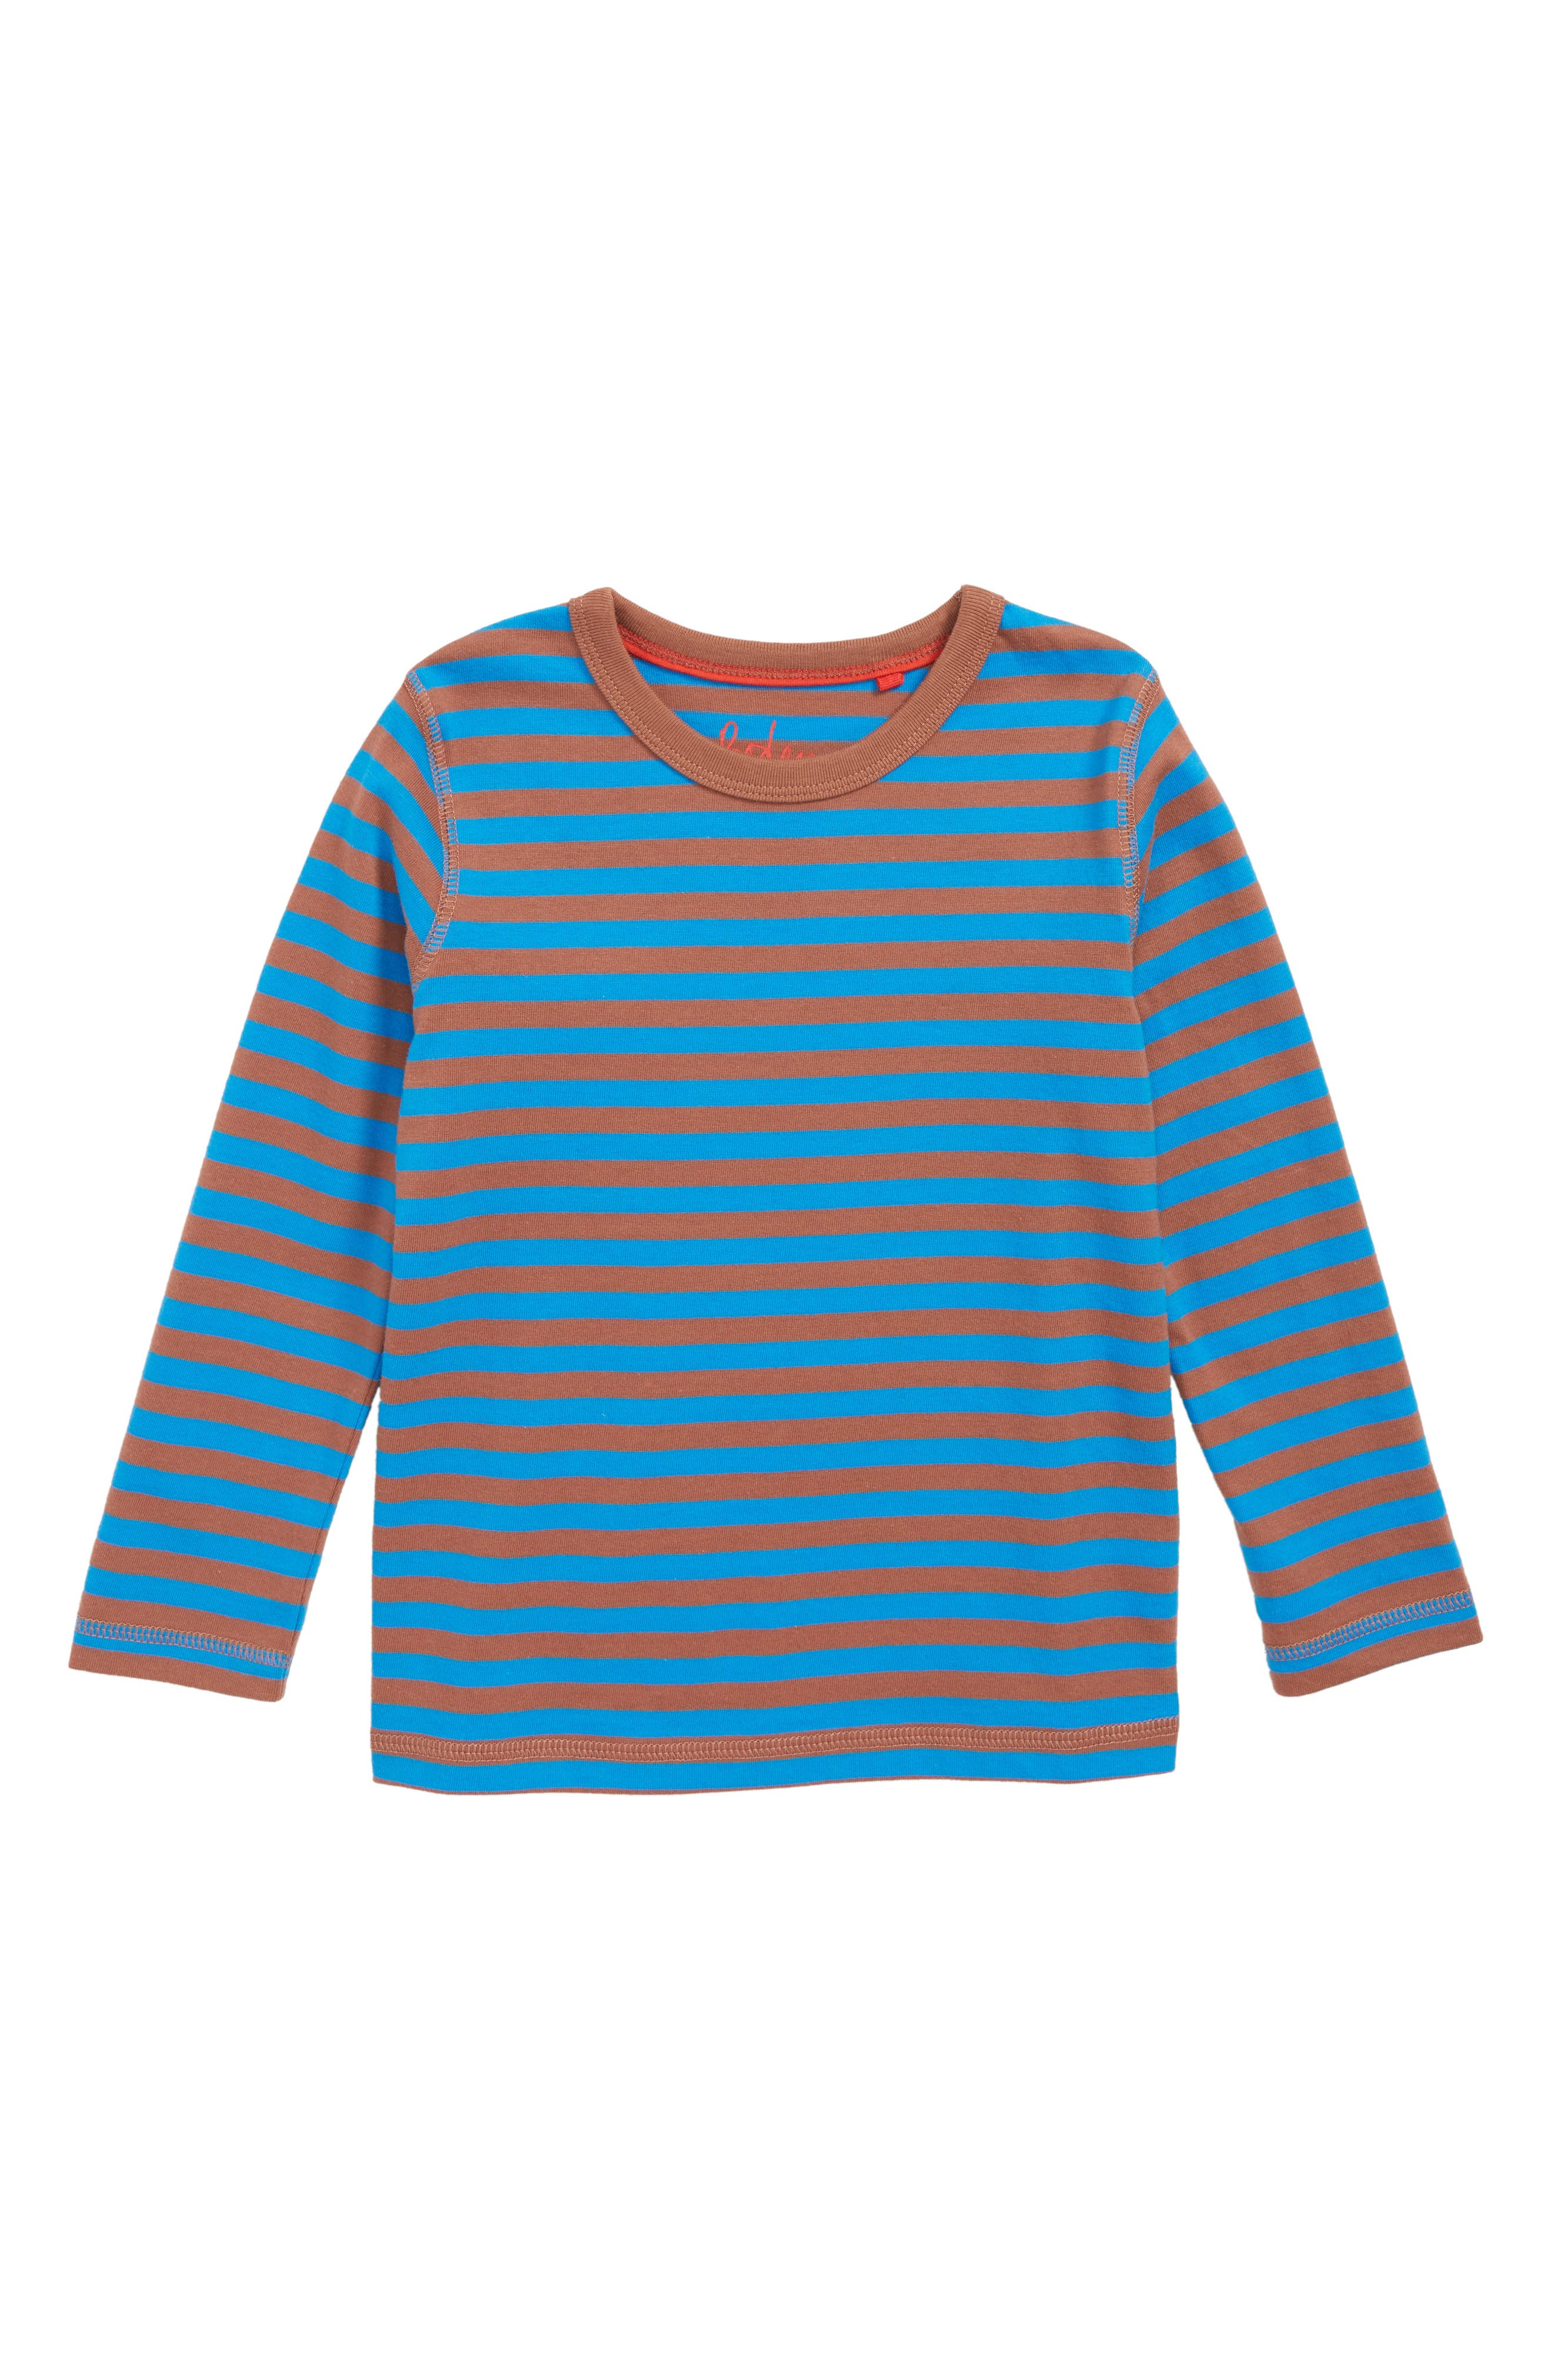 Supersoft Stripe T-Shirt,                             Main thumbnail 1, color,                             ELECTRIC BLUE/ MUD PIE BROWN